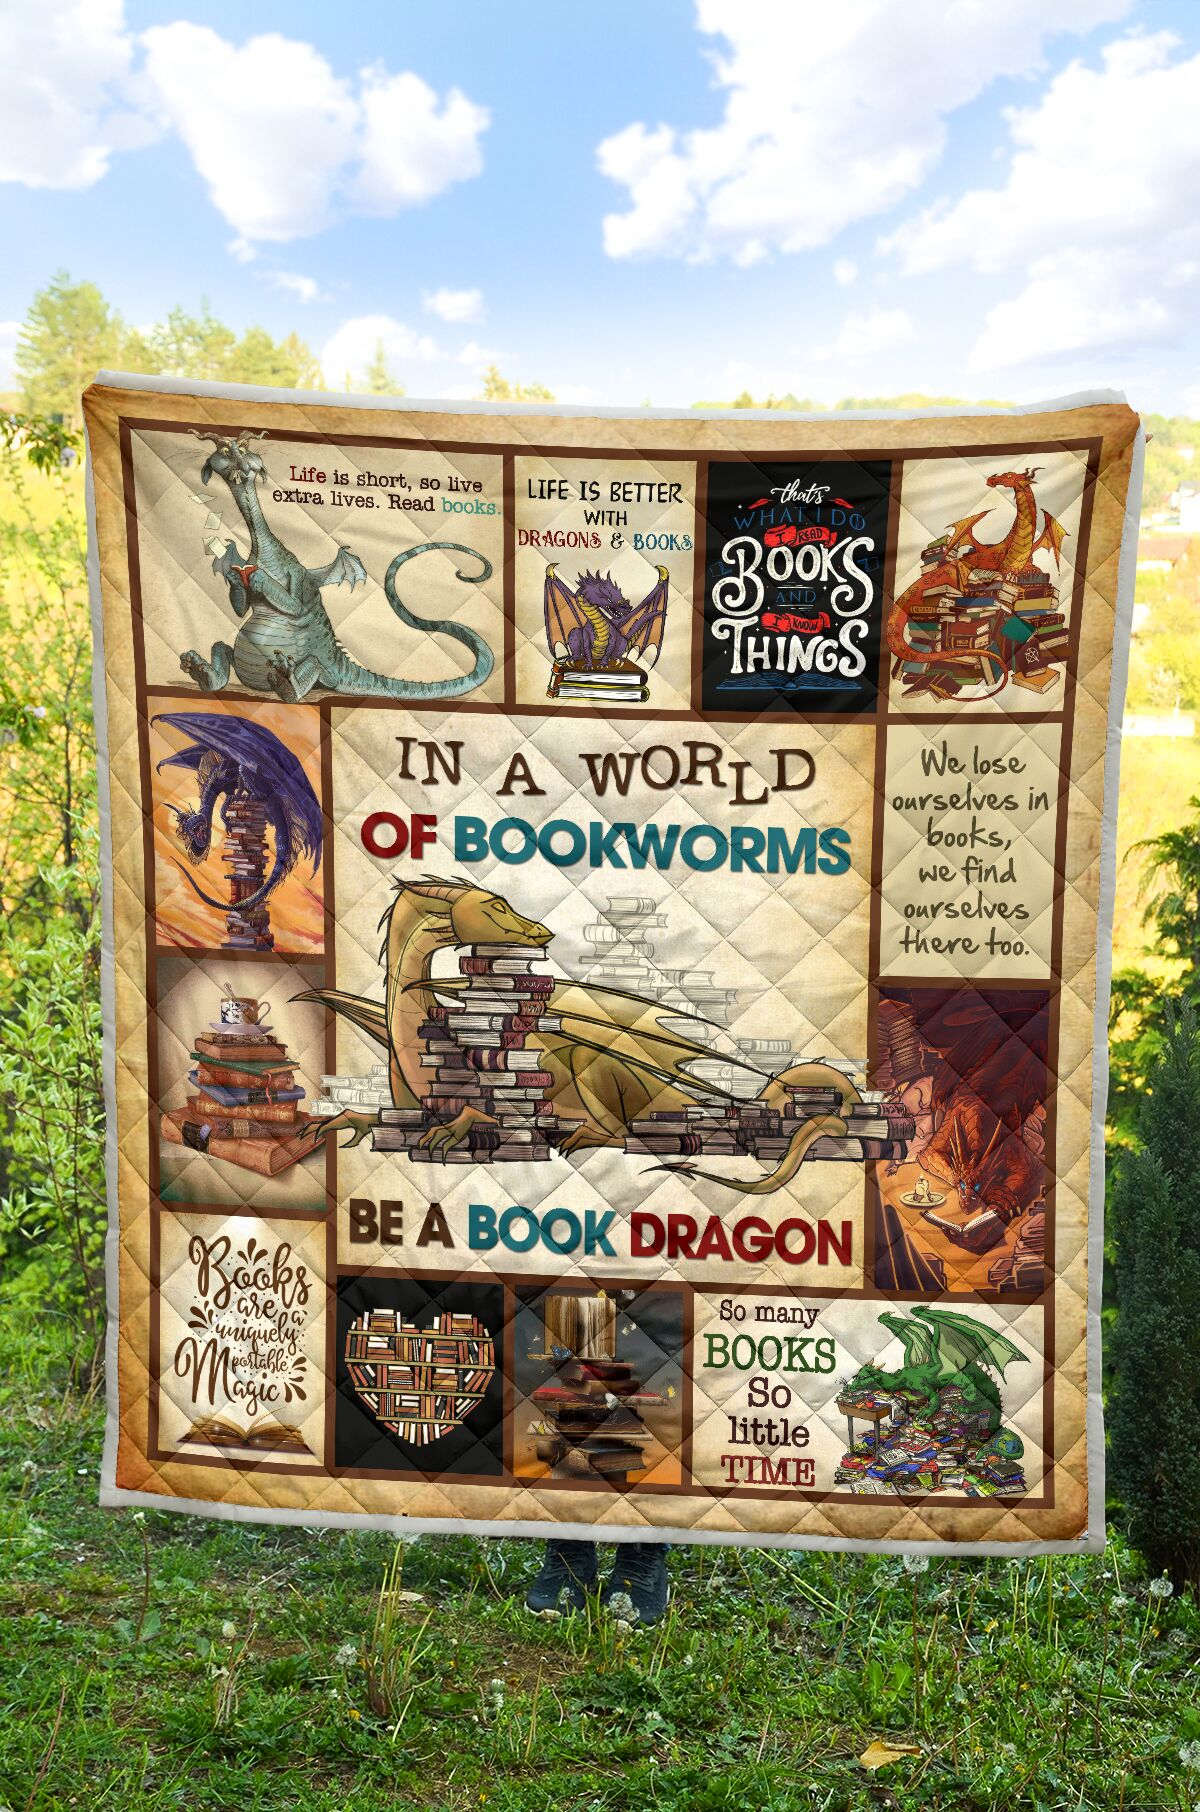 In a world of bookworms be a book dragon full over printed quilt 3